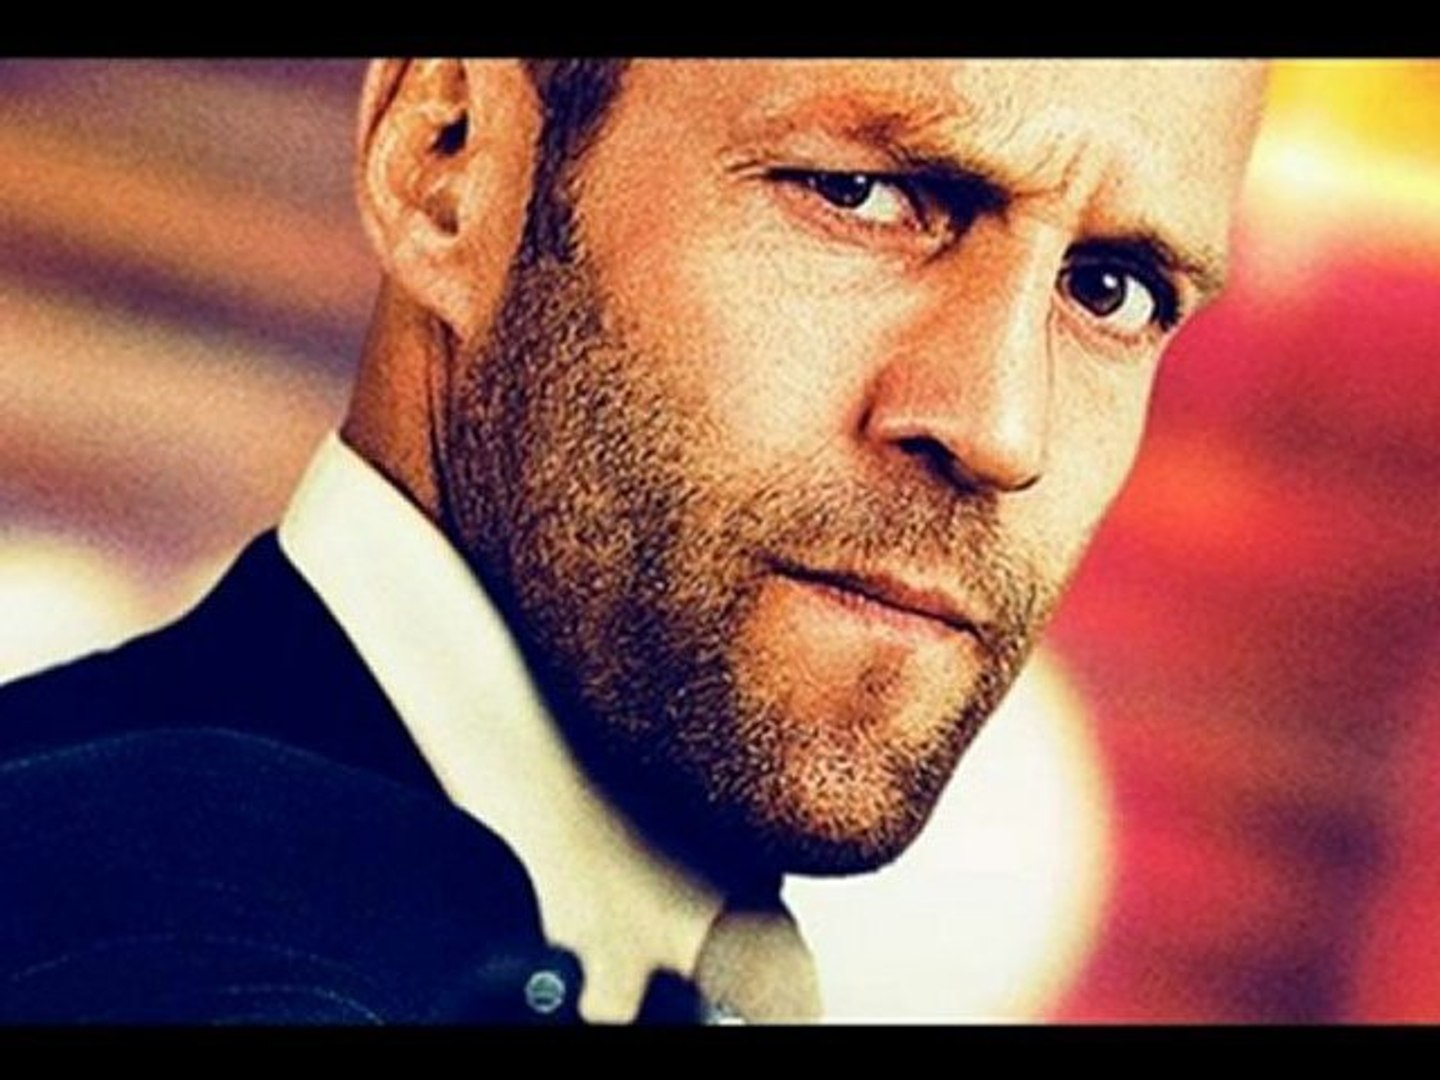 Watch Full Movies Online Free Safe 2012 HD - Jason Statham Part 1 of 8